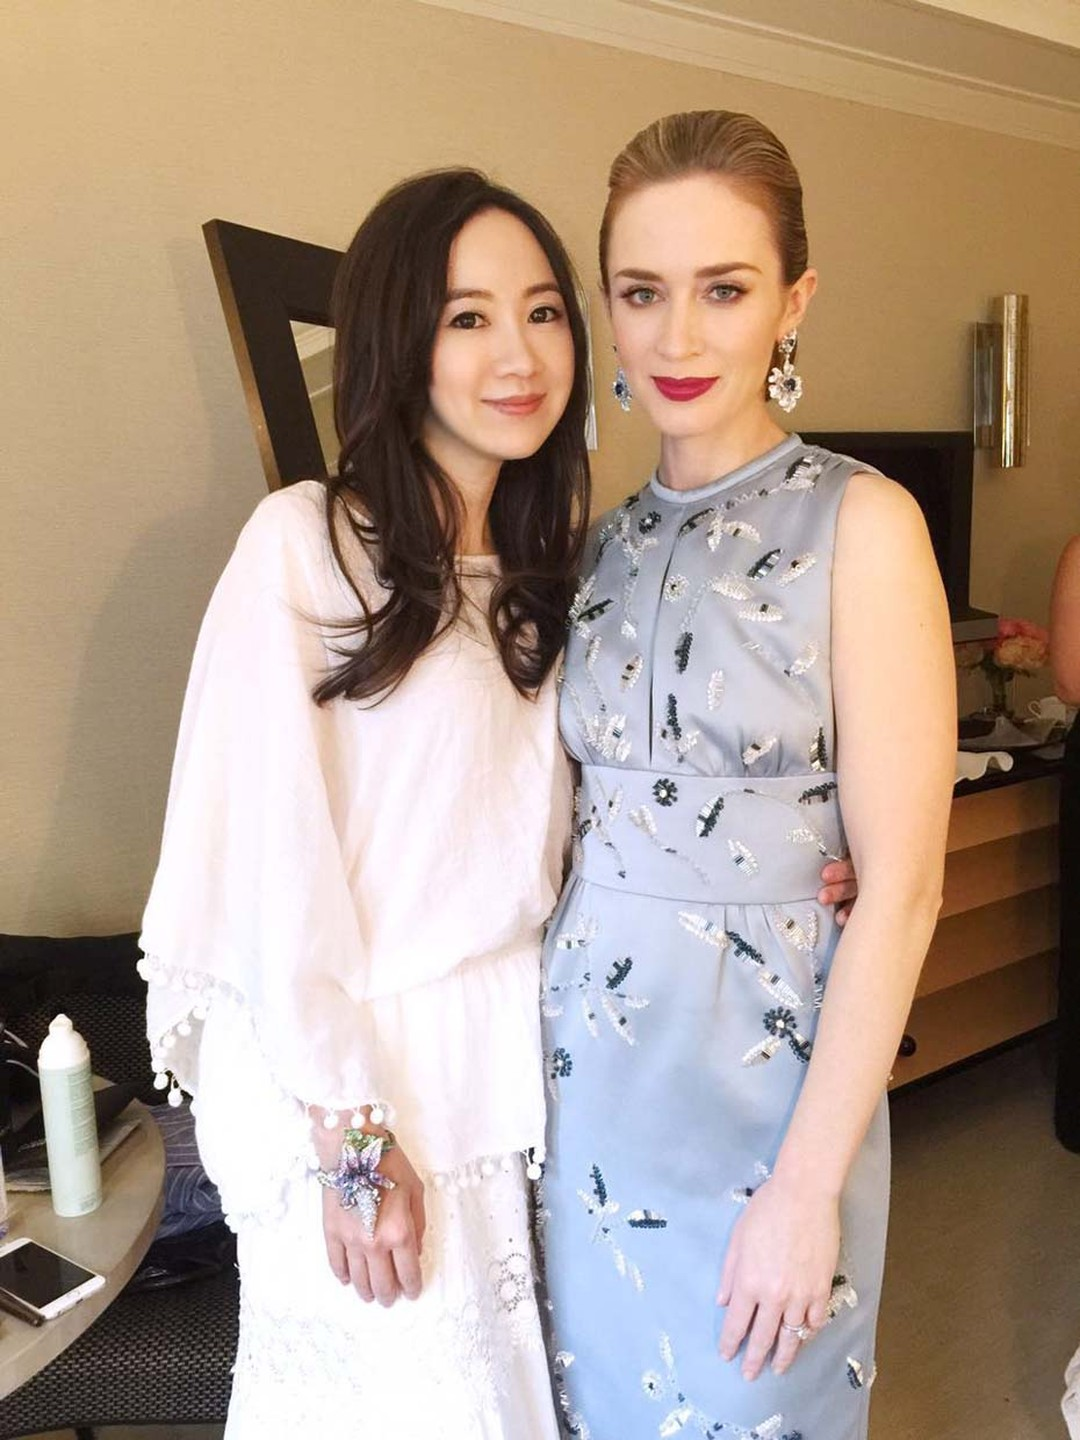 Anna Hu with actress Emily Blunt, who wore a pair of one-of-a-kind sapphire earrings by the designer to the Met Gala 2015.